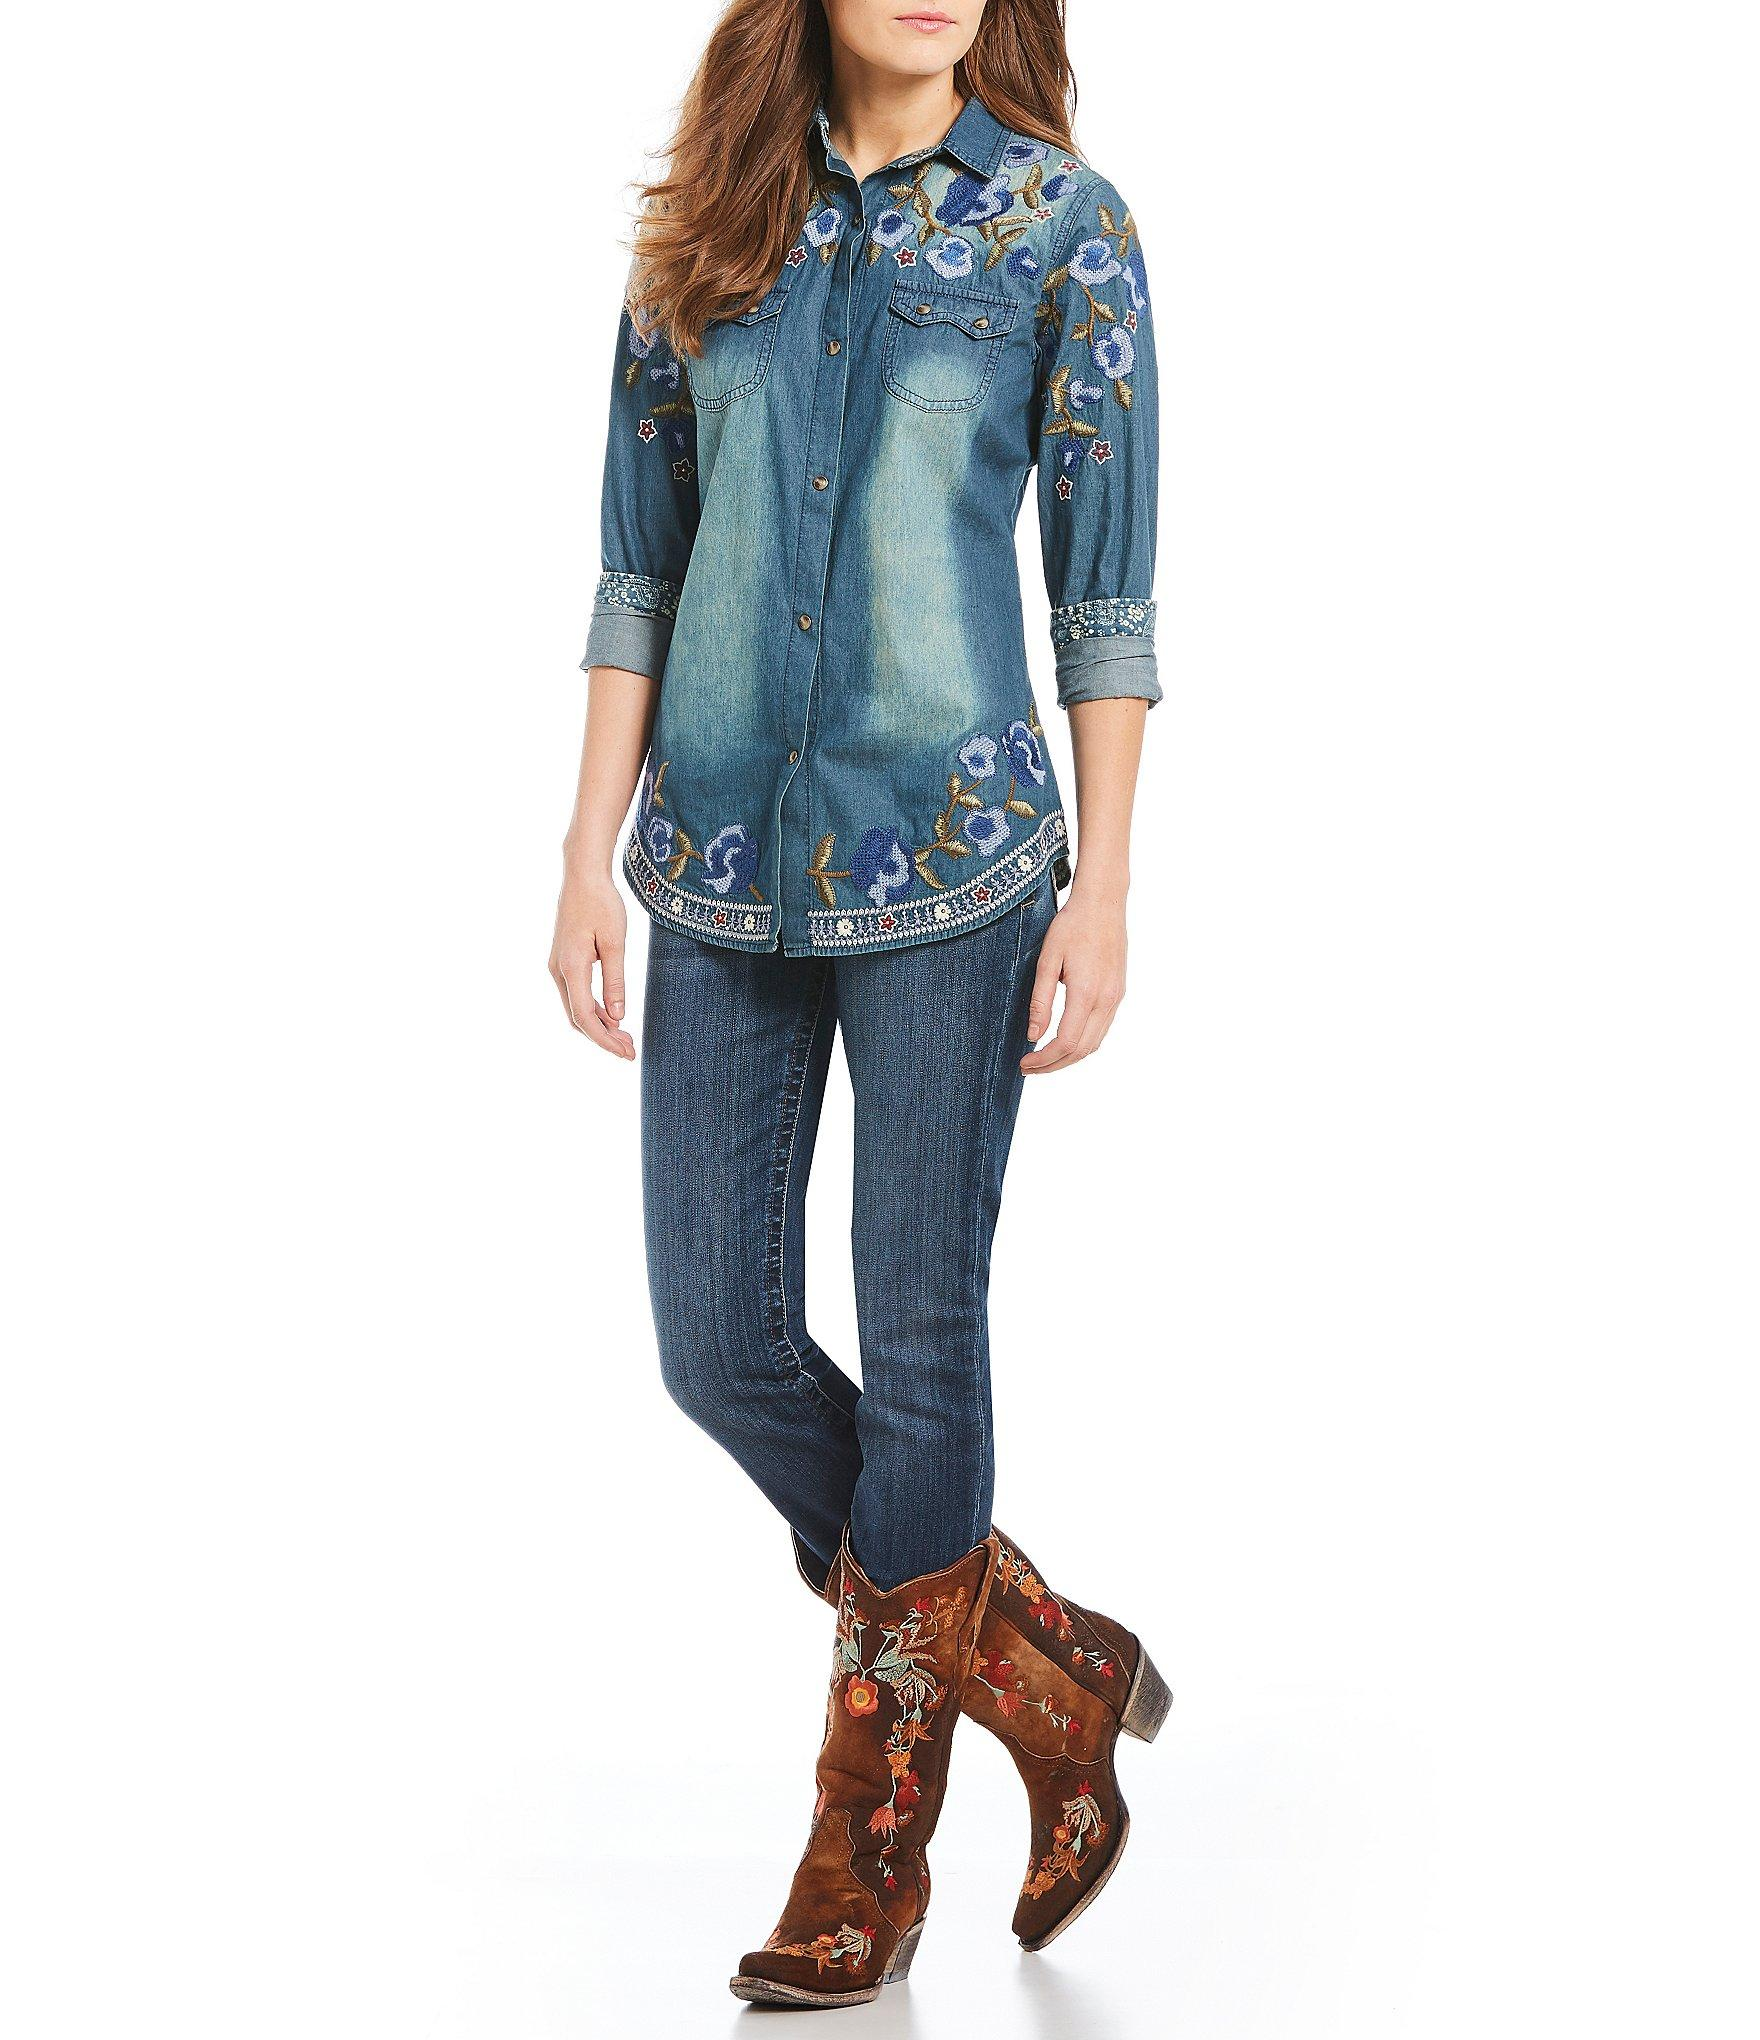 038ab0ec578 Tasha Polizzi - Blue Revolution Denim Floral Embroidered Shirt - Lyst. View  fullscreen